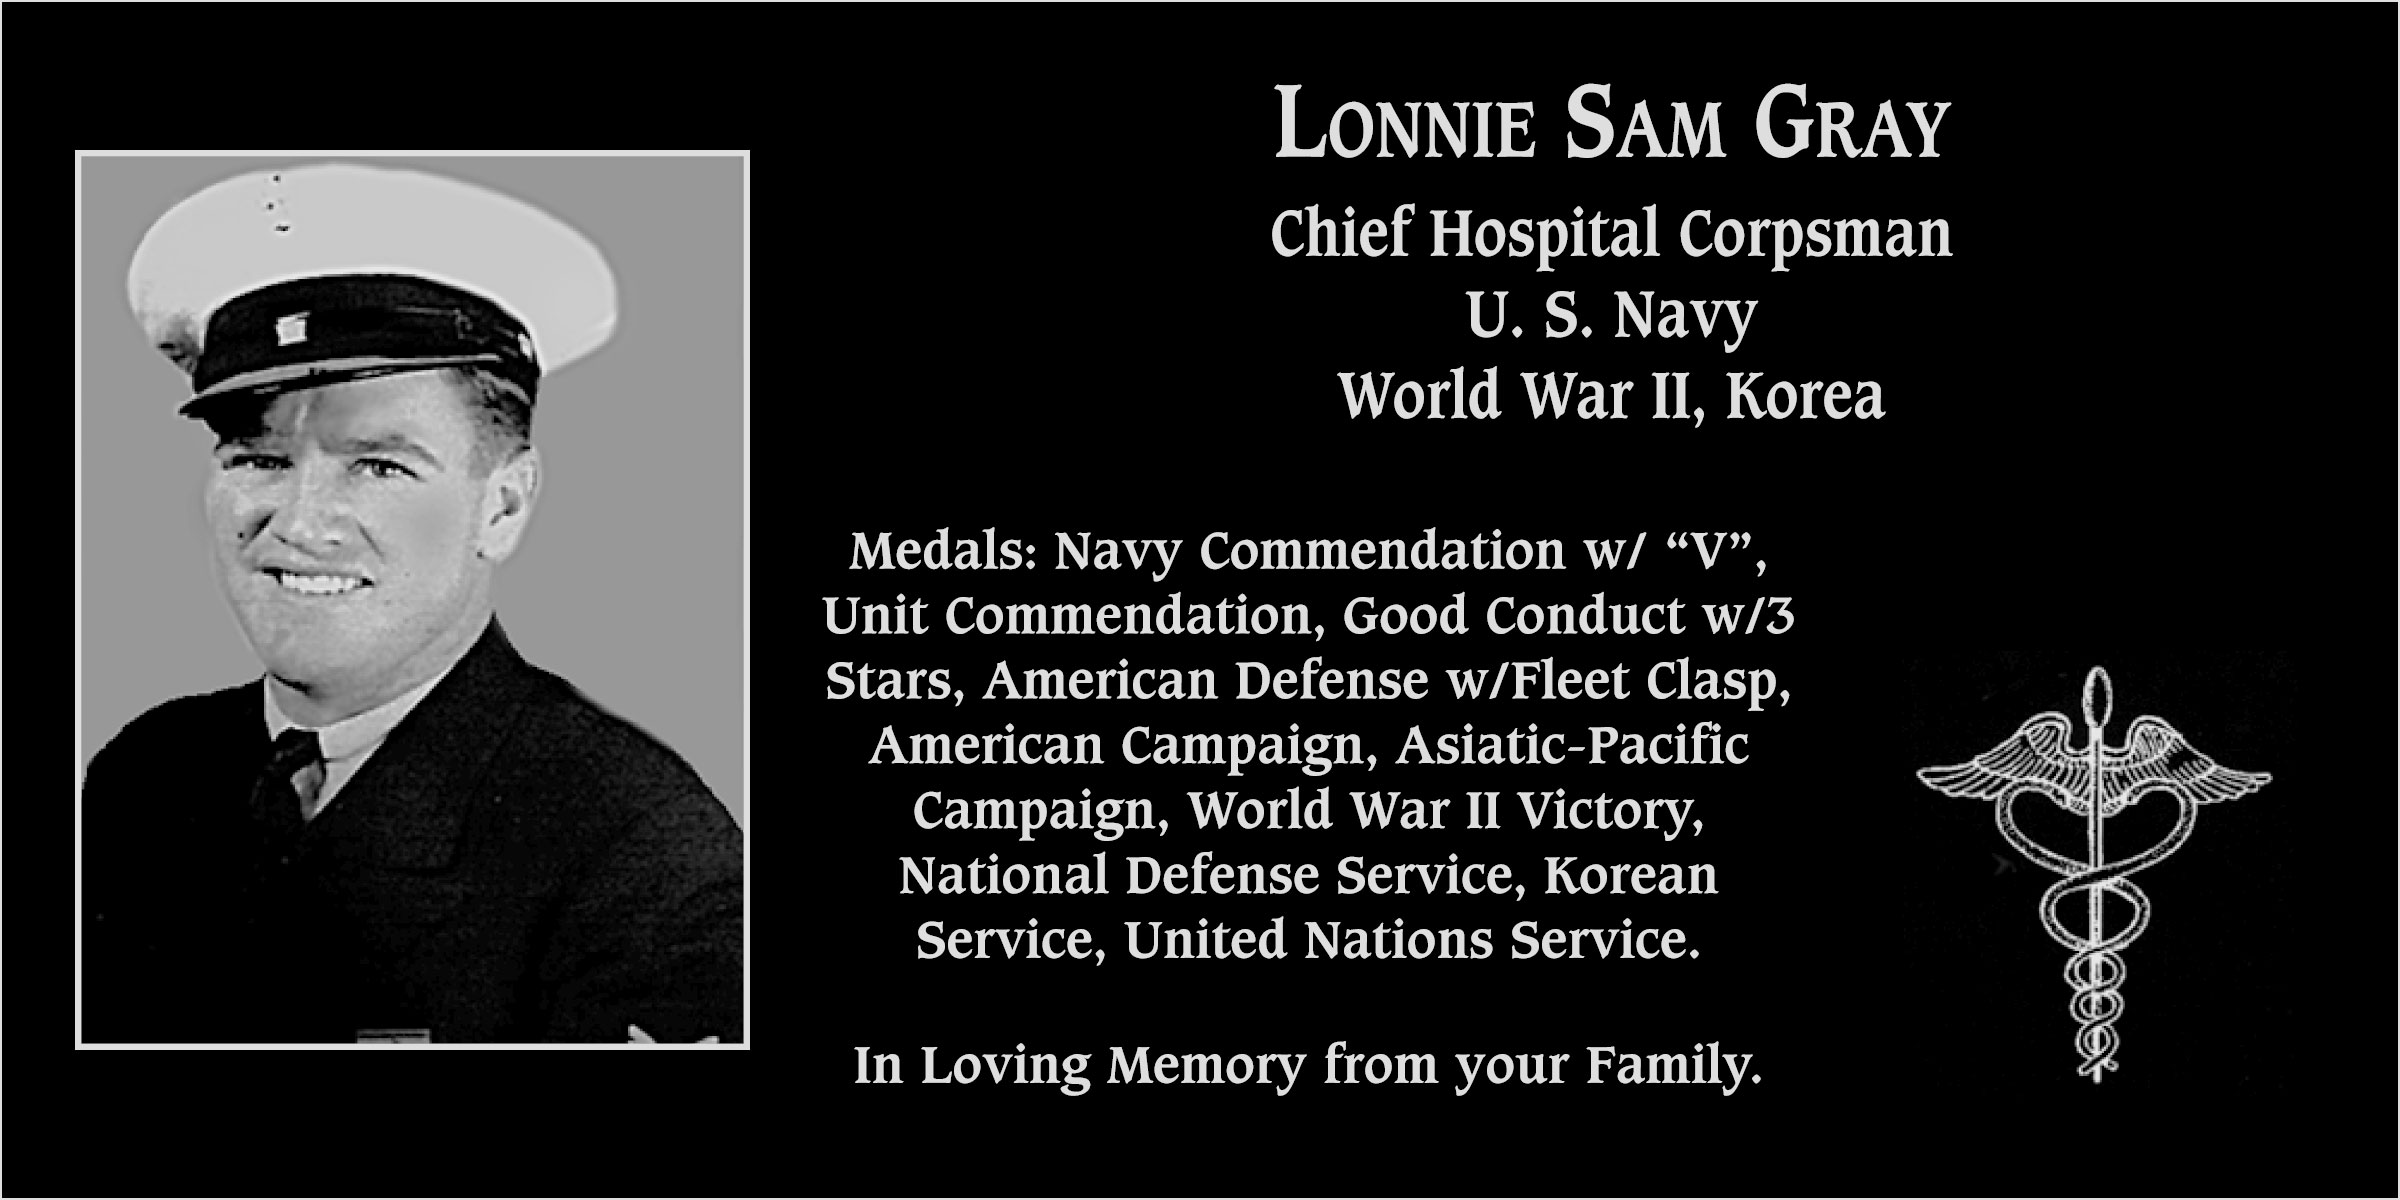 Lonnie Sam Gray